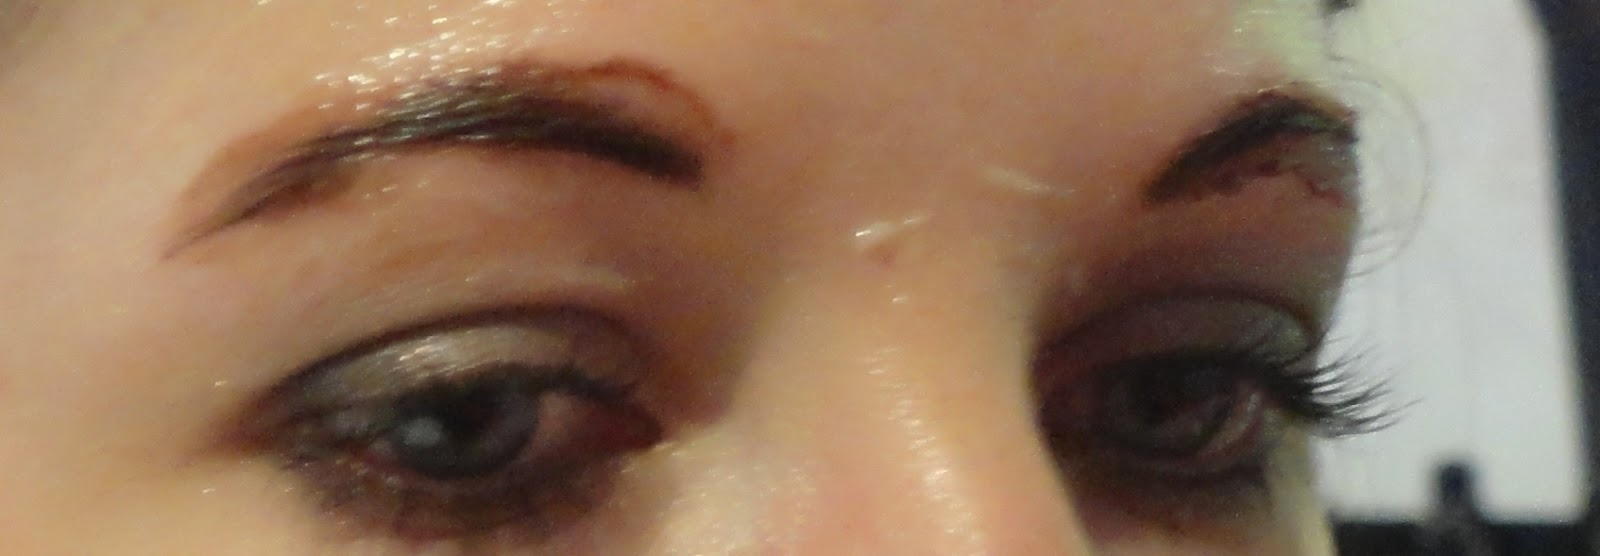 test du brow bar le bar sourcils benefit - Coloration Sourcils Sephora